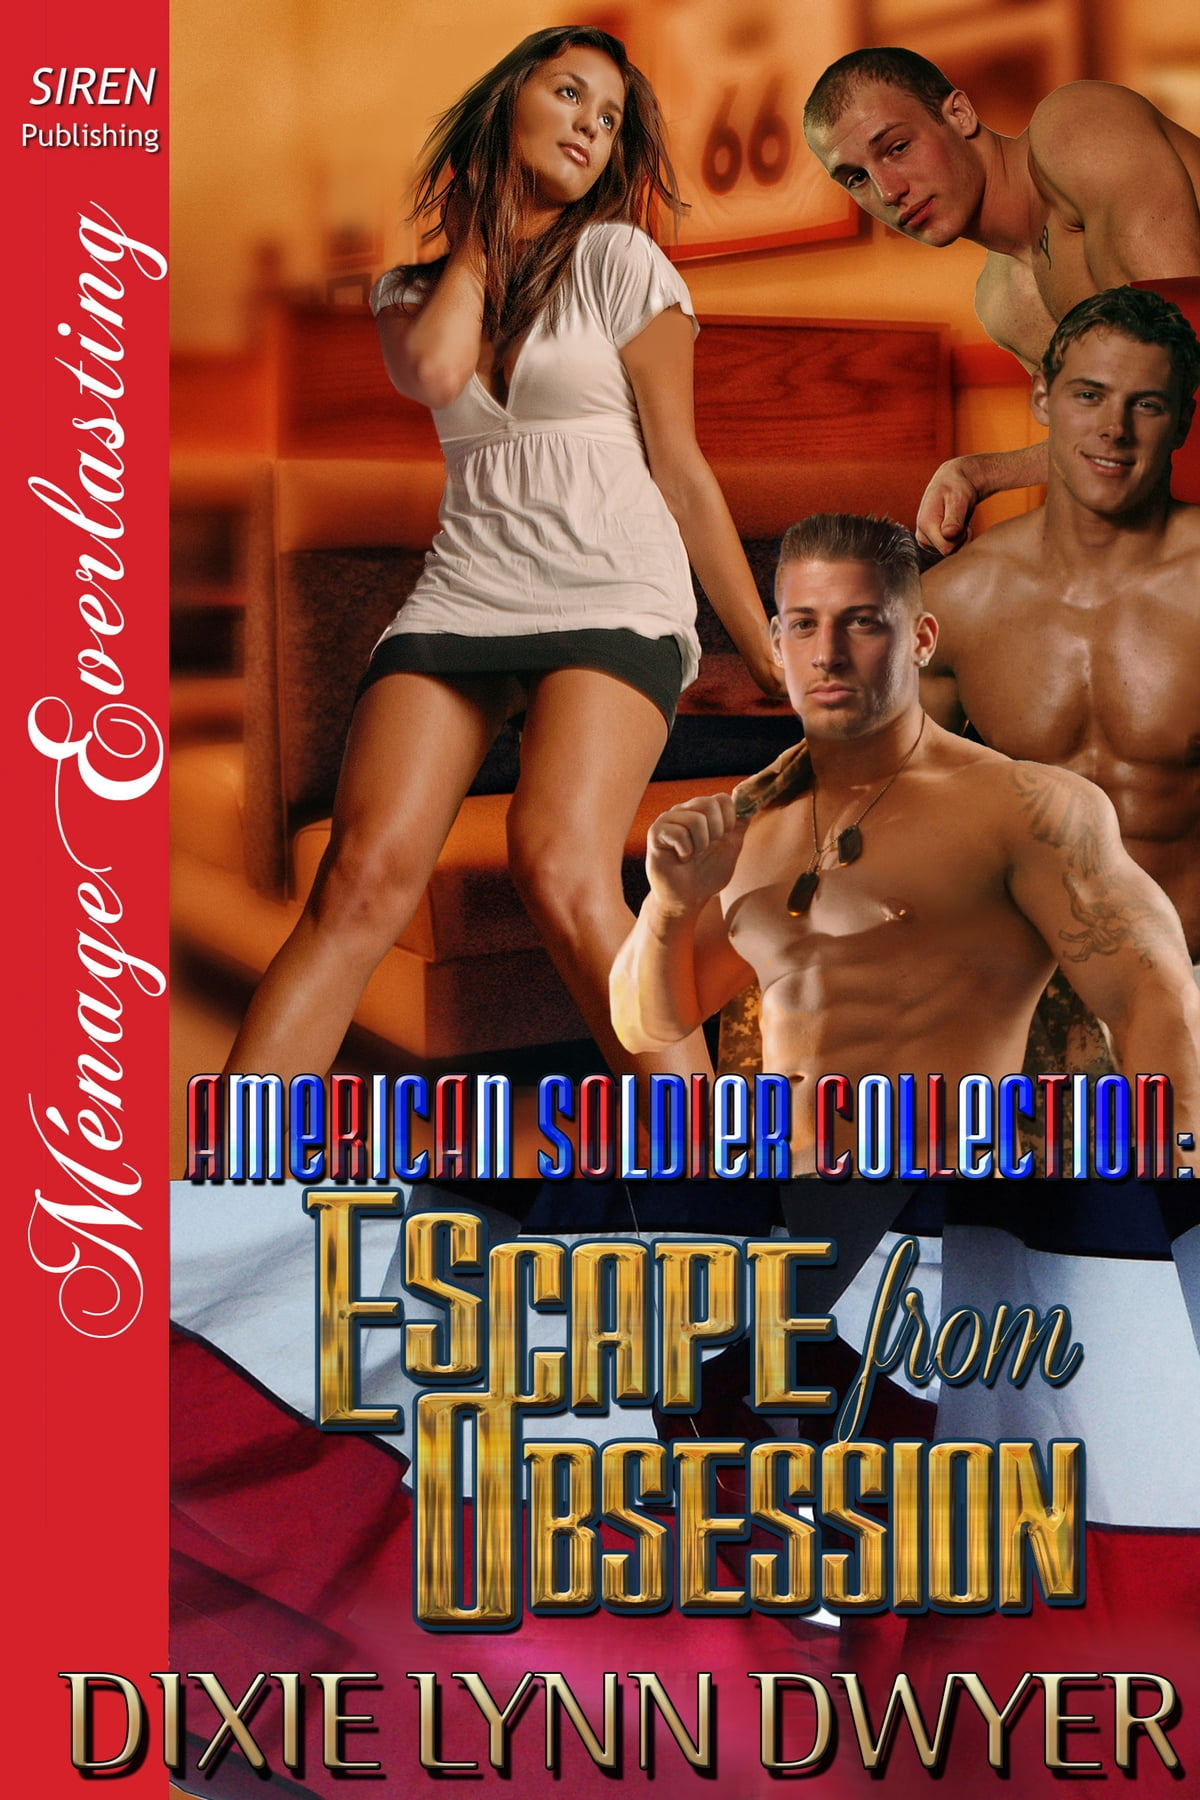 The American Soldier Collection: Escape From Obsession Ebook By Dixie Lynn  Dwyer  9781622428526  Rakuten Kobo